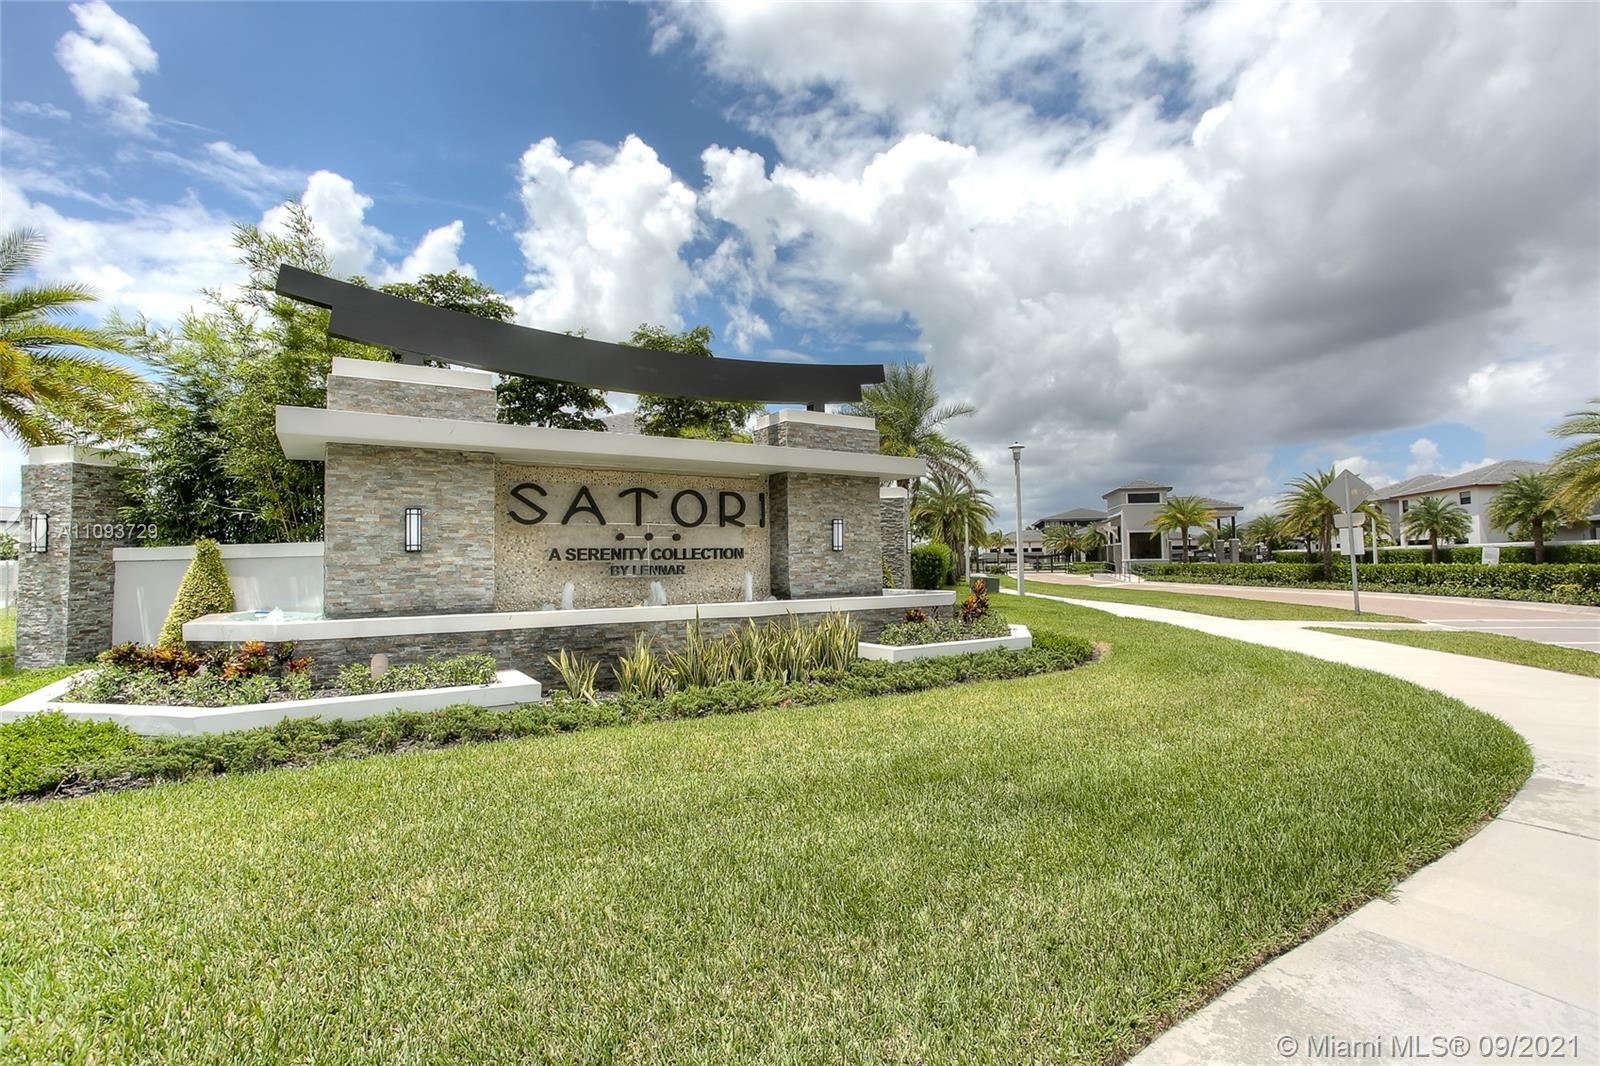 15822 NW 91st Ave #15822, Miami Lakes, FL 33018 - #: A11093729